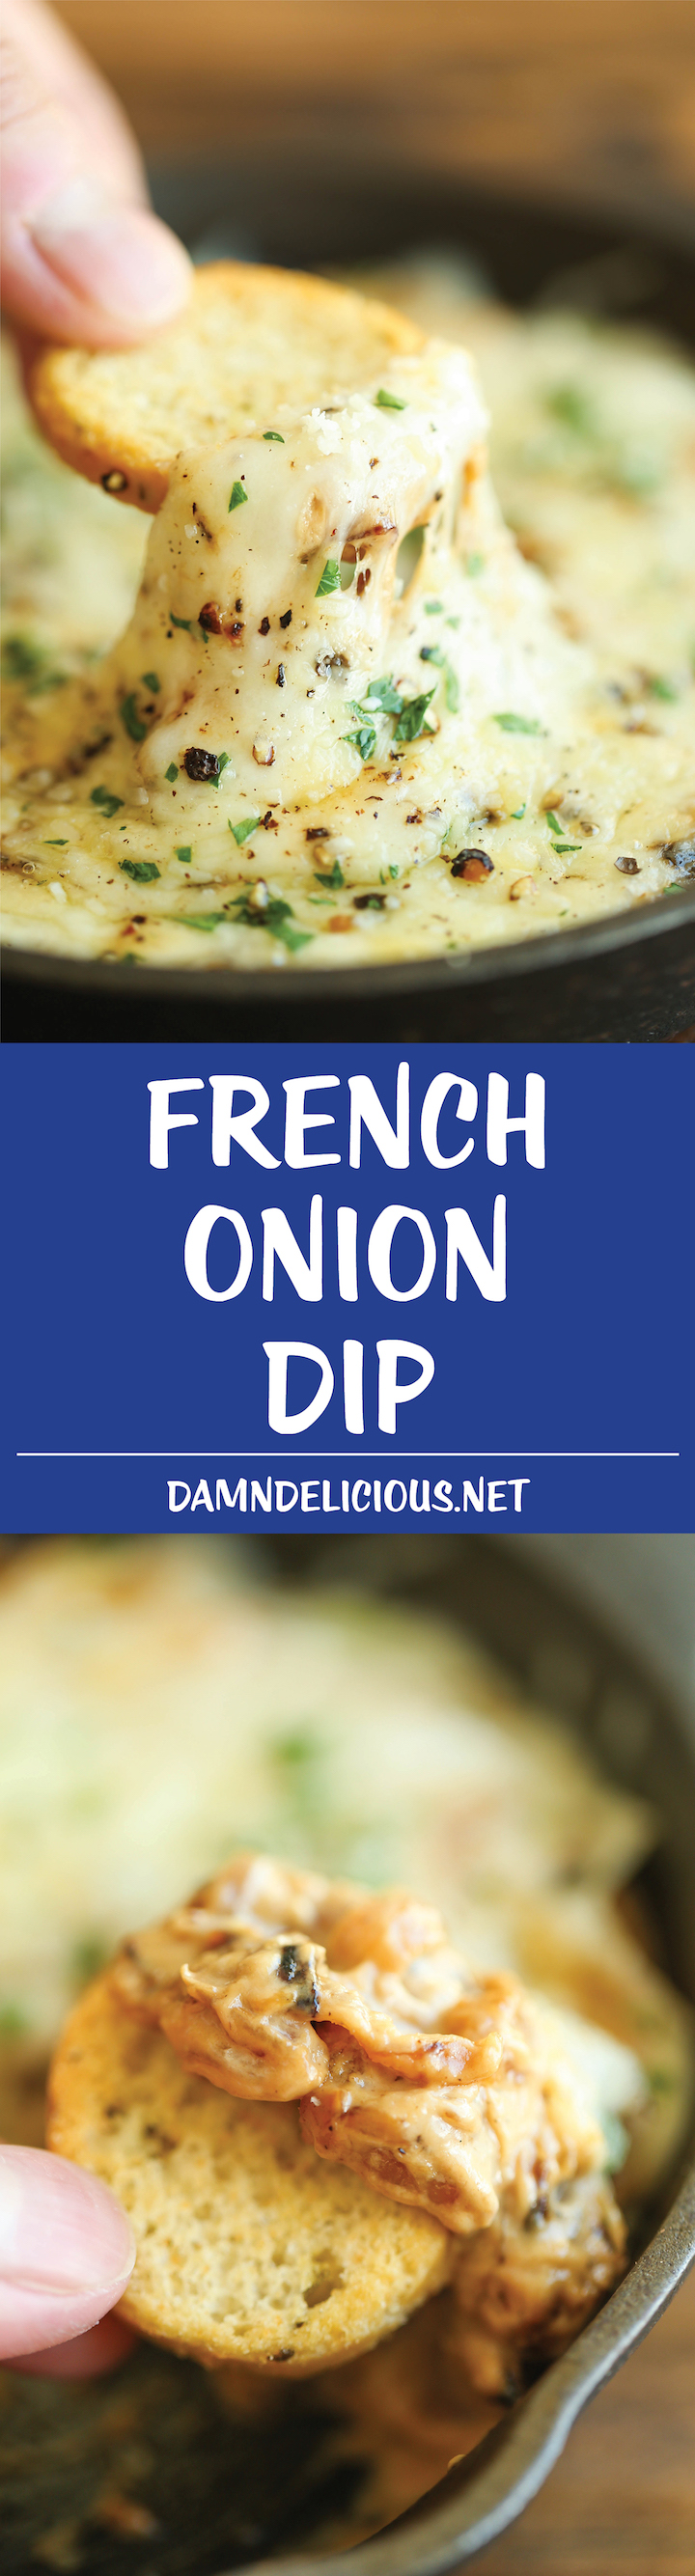 French Onion Dip -Everyone's favorite French onion soup is transformed into the cheesiest, creamiest dip of all time. One bite and you'll be hooked!